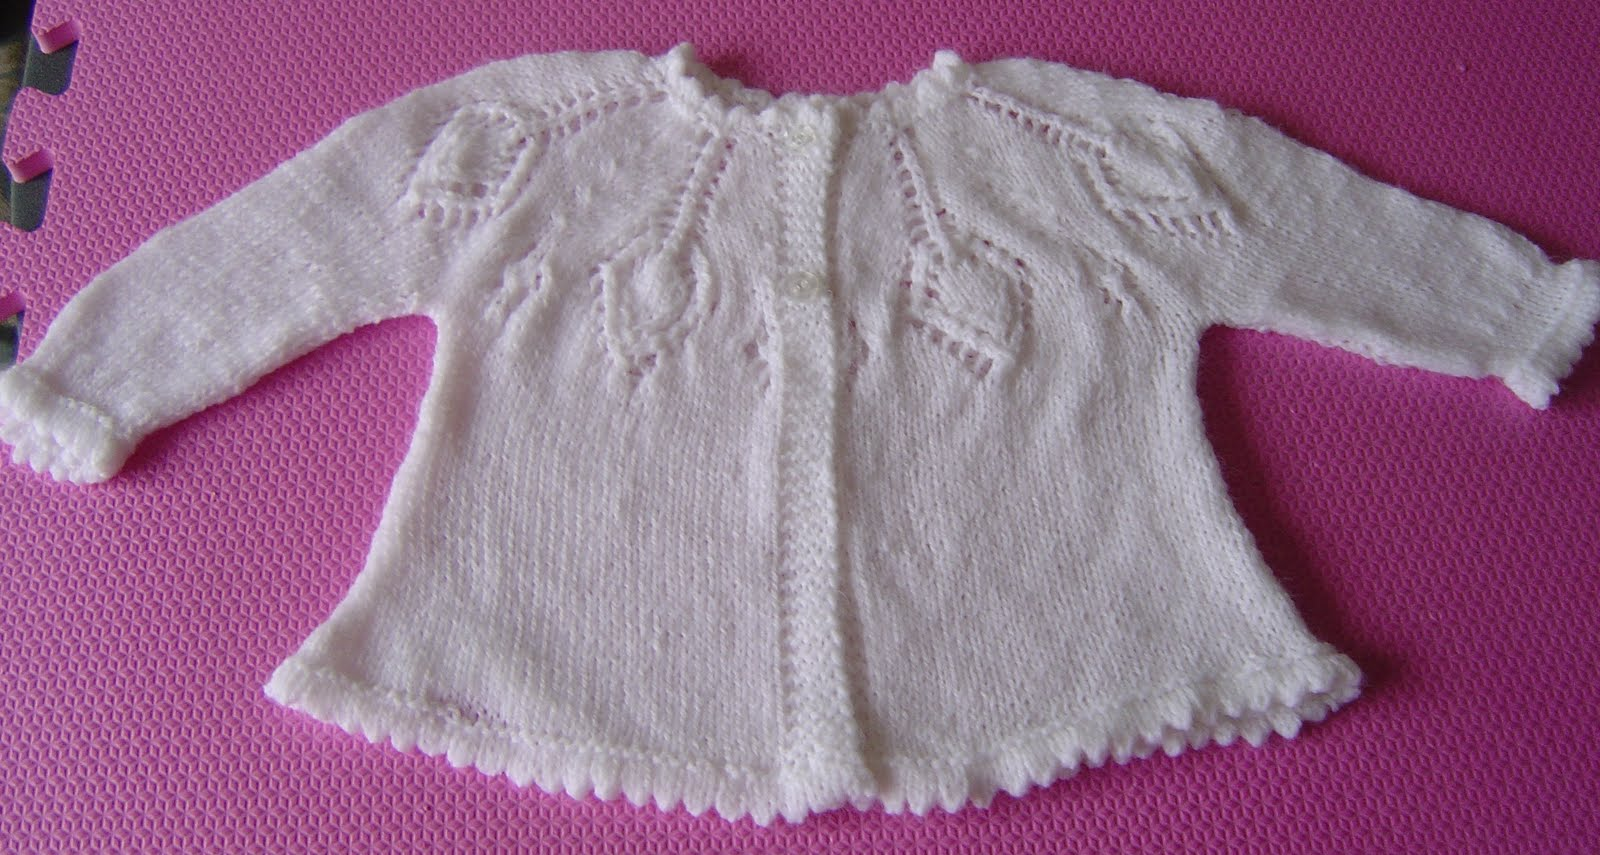 Free Baby Knitting Patterns : Related Pictures Famous free baby knitting patterns